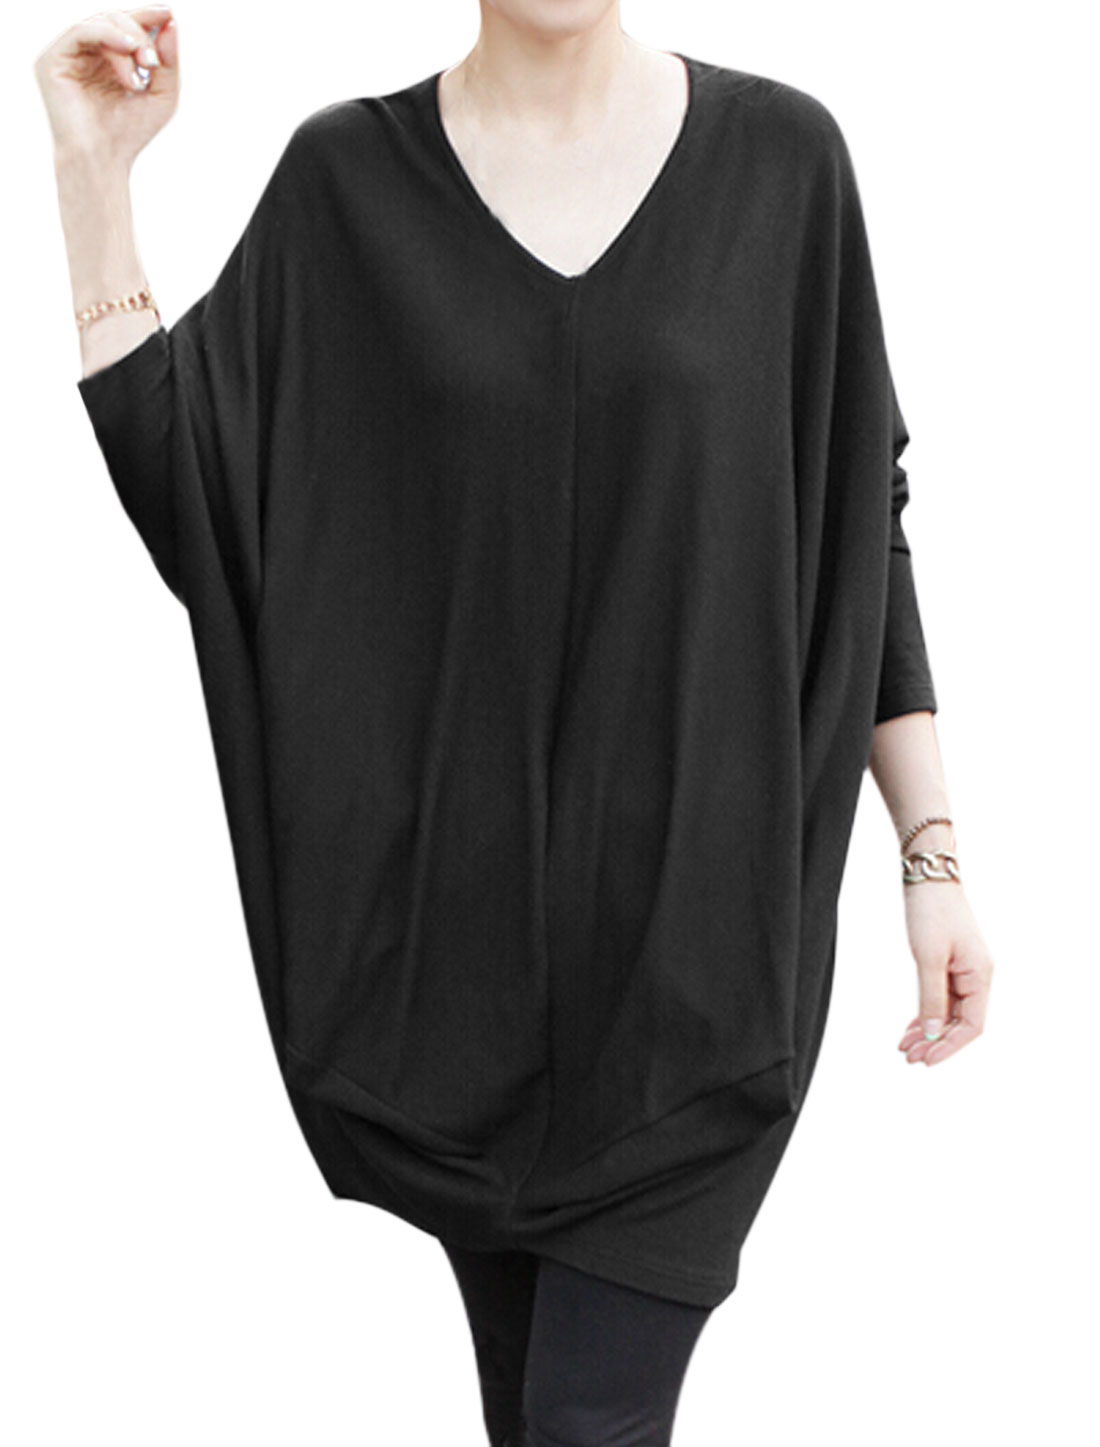 Women V Neck Batwing Sleeves Two Pockets Tunic Top Black S